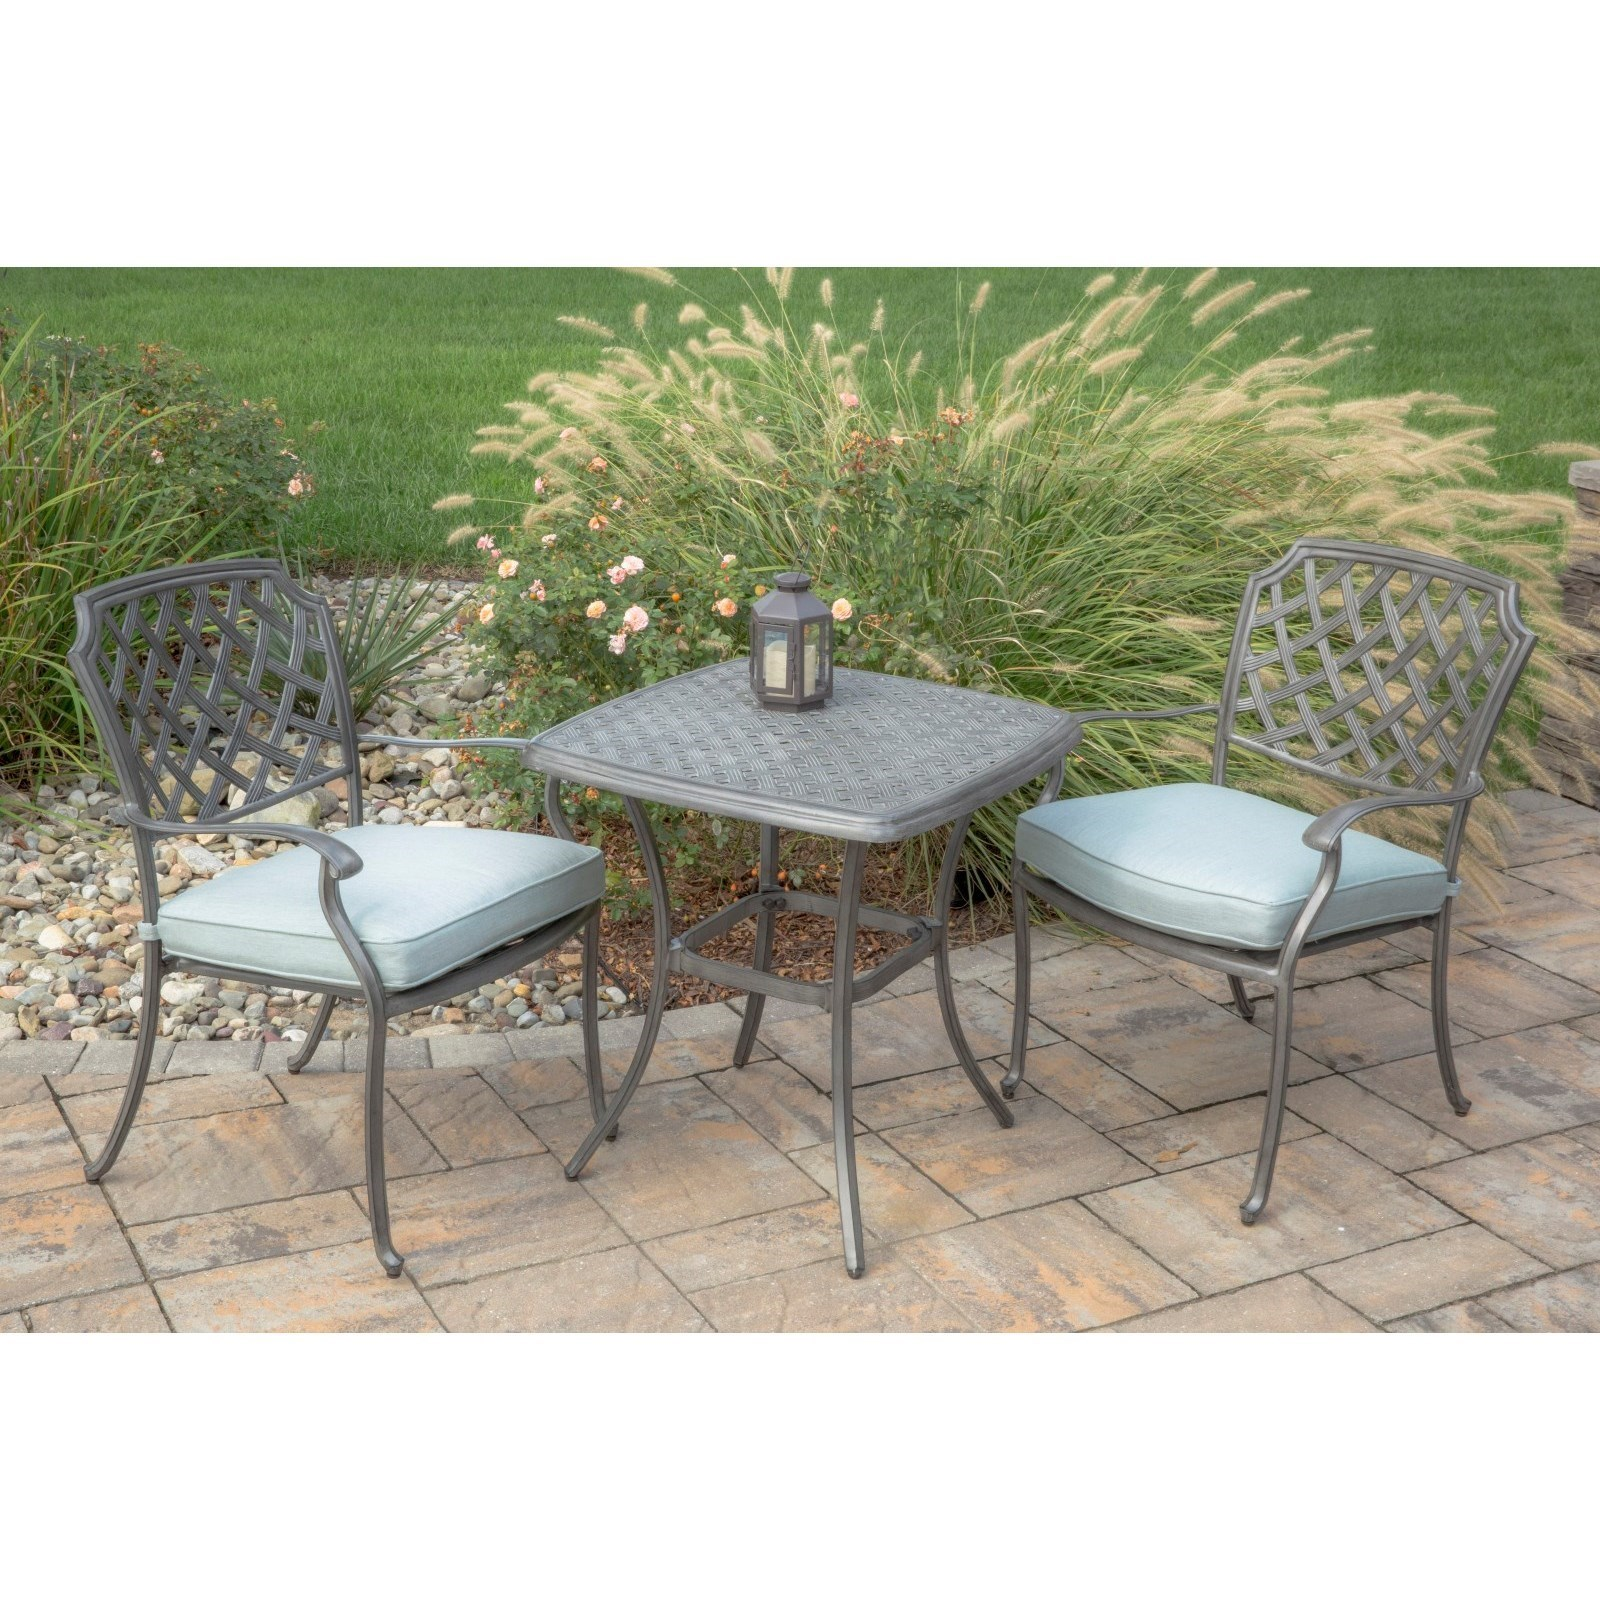 agio melbourne by agio outdoor bistro set with two stationary chairs